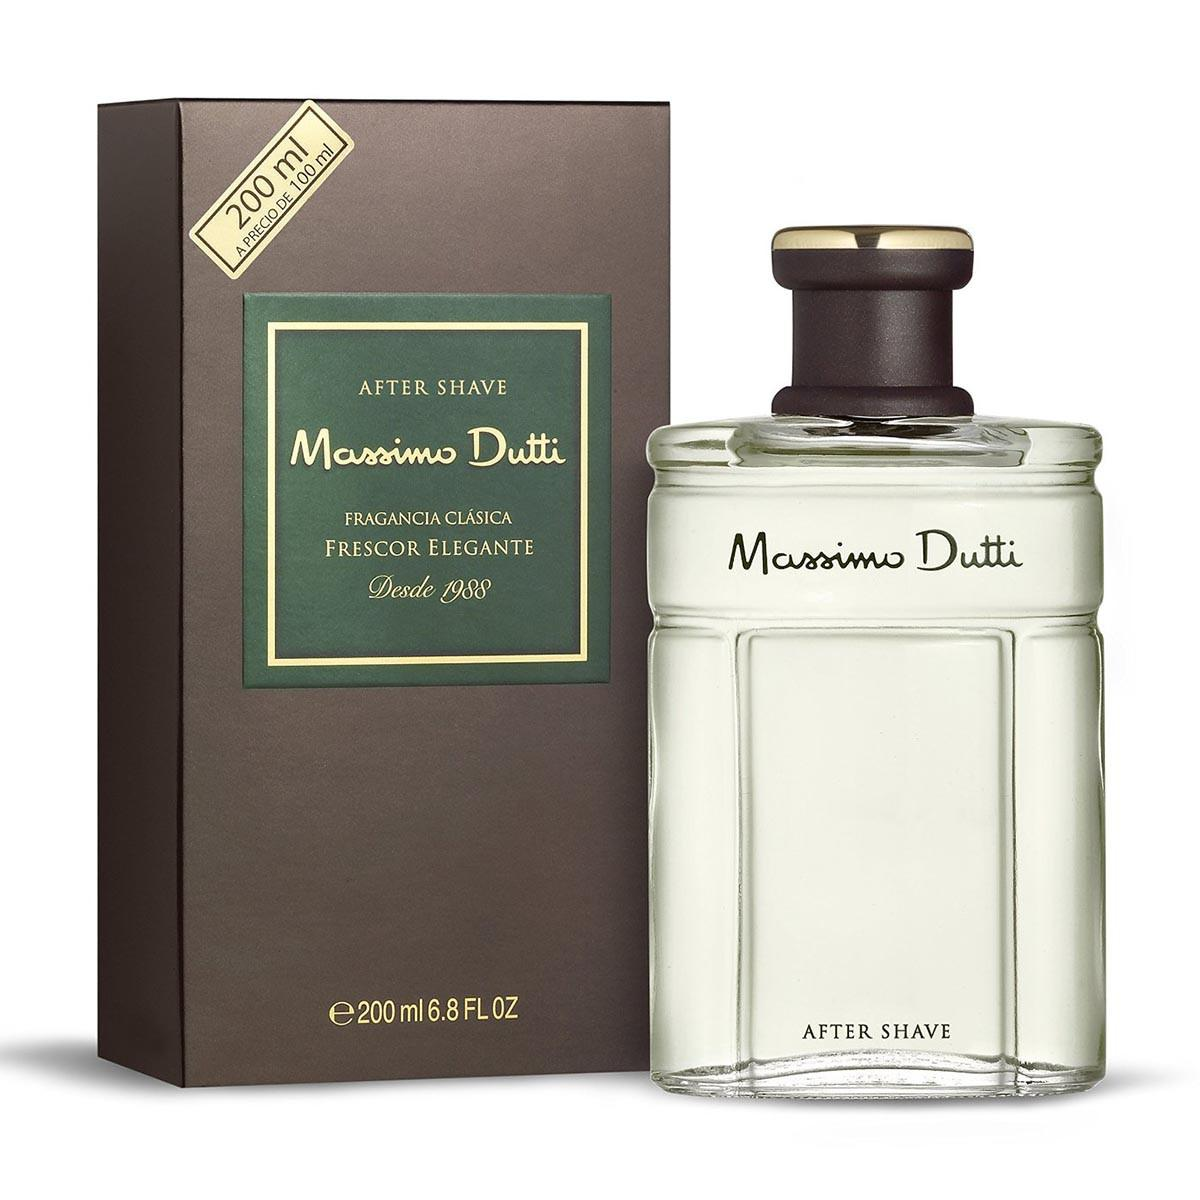 Consumo fragrances Massimo Dutti After Shave 200ml